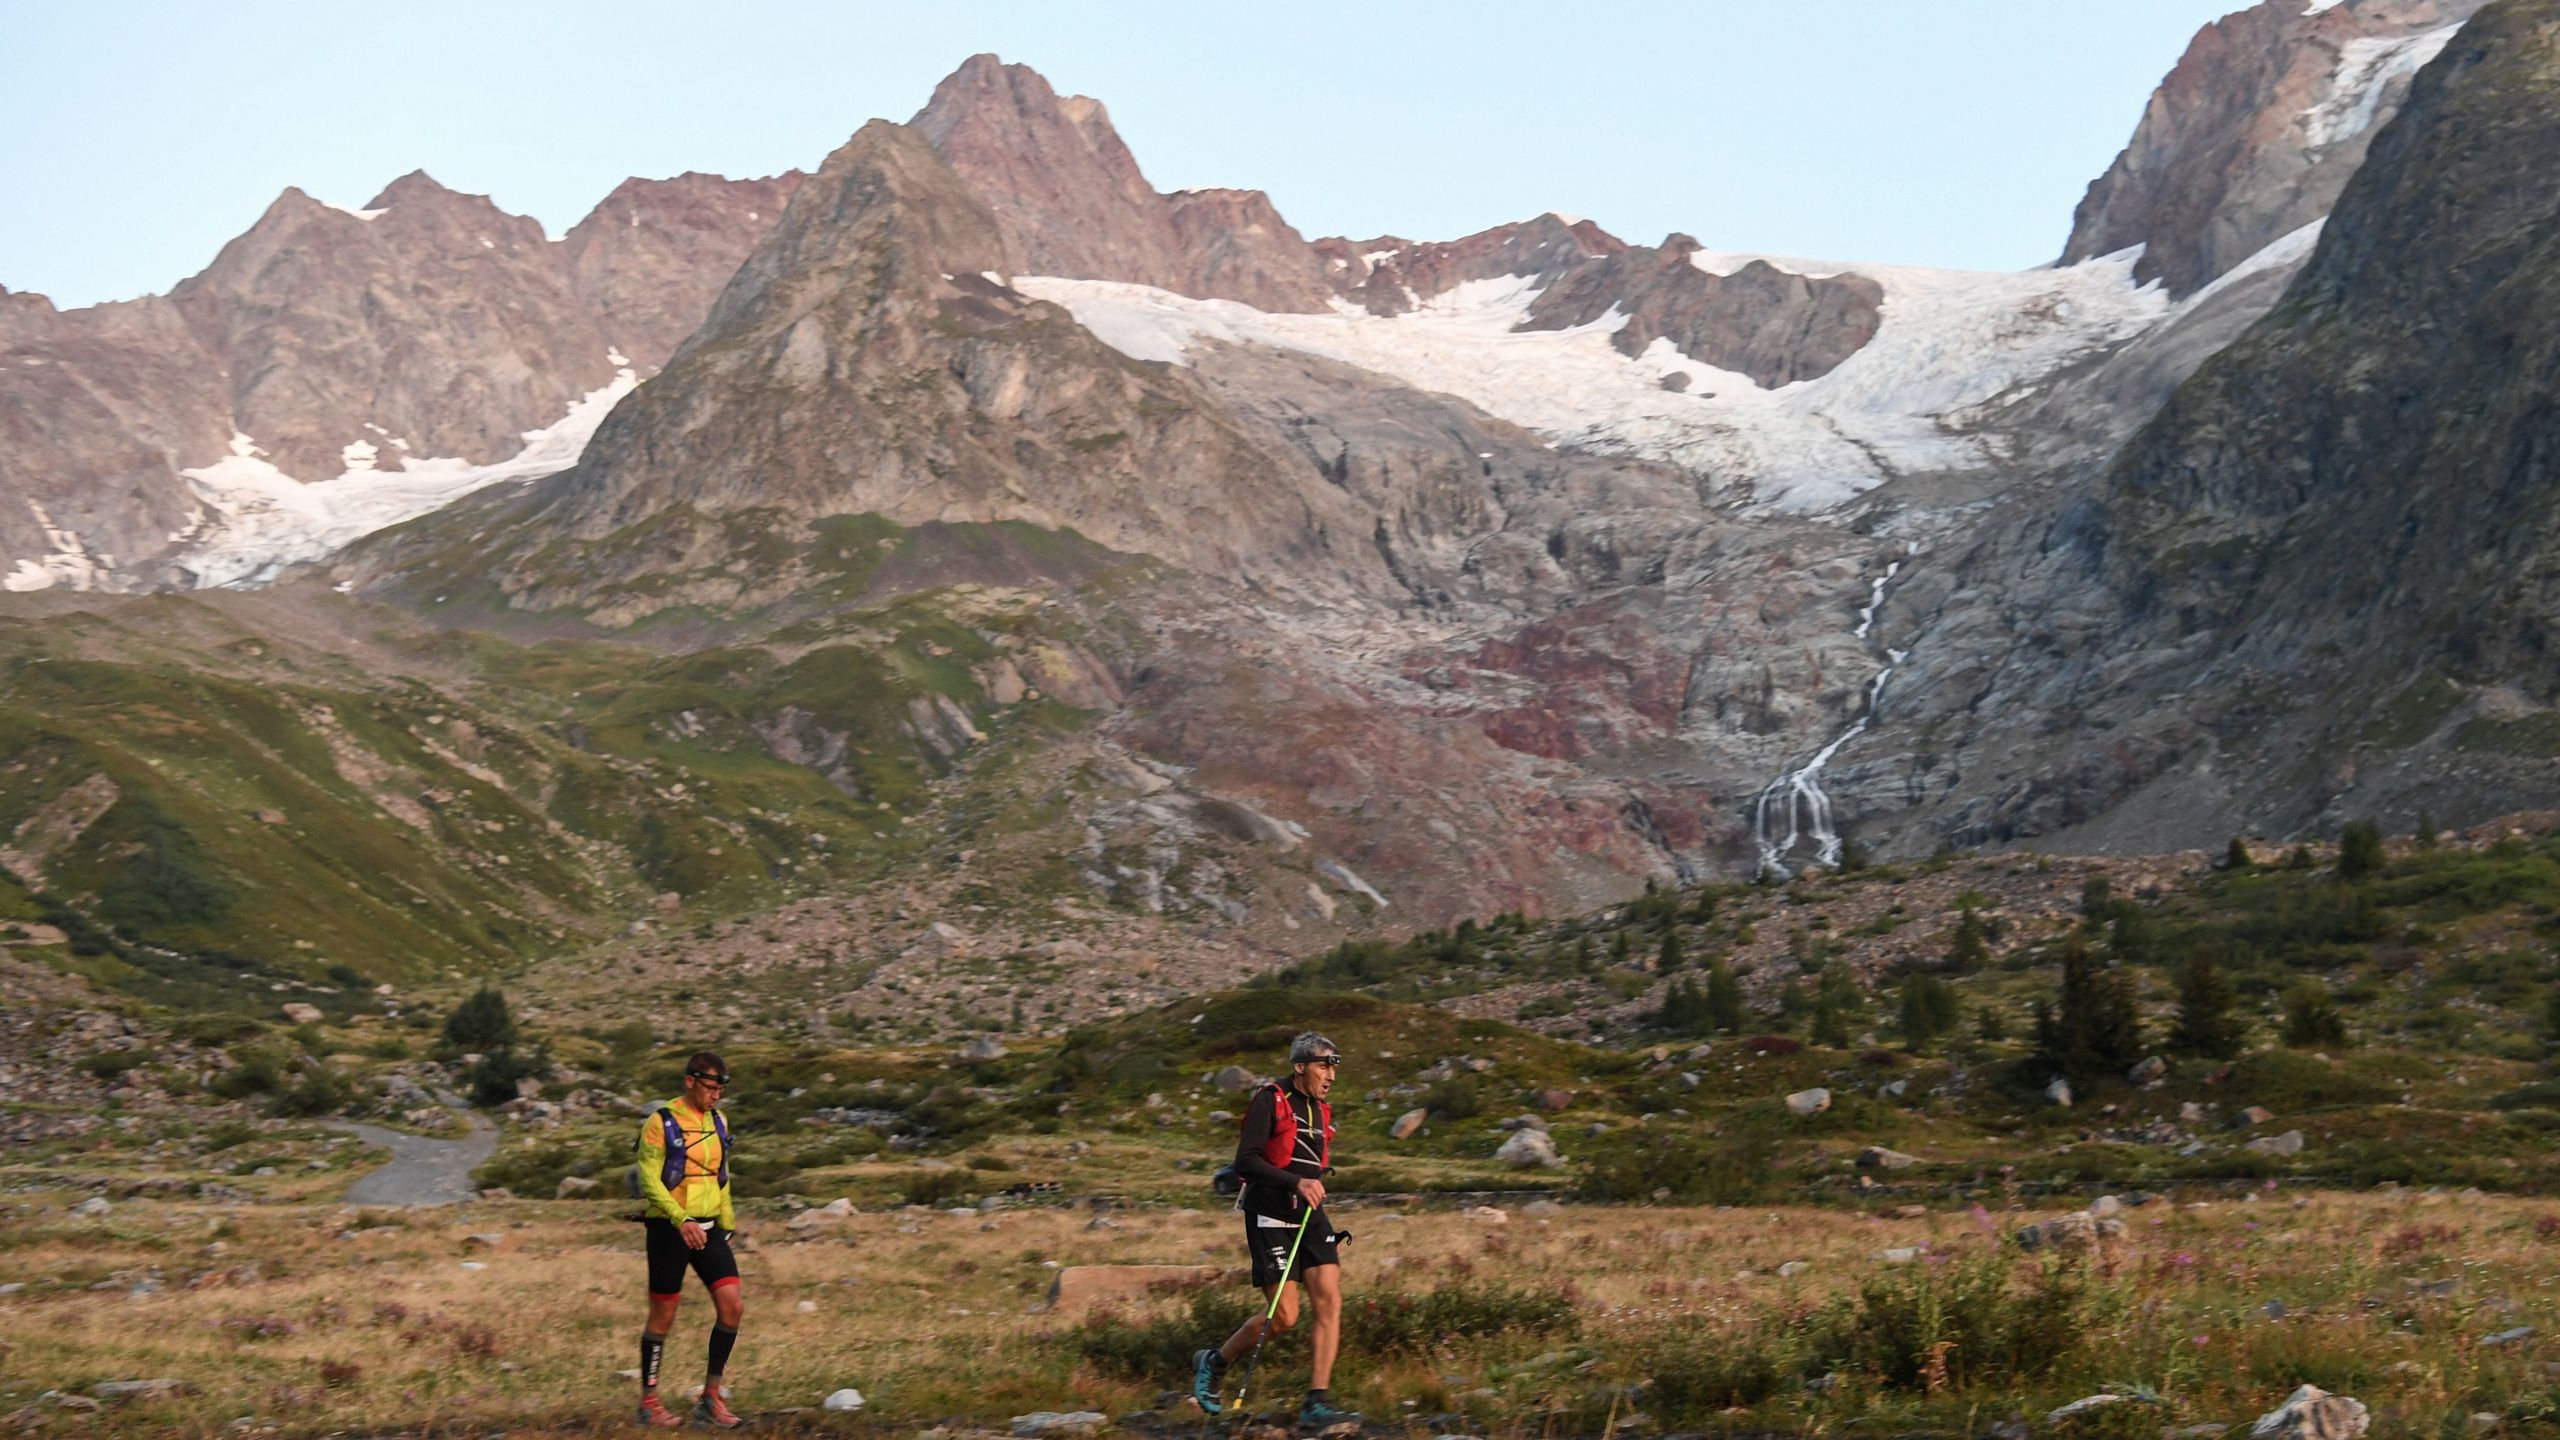 Competitors perform during the 170 km Mount Blanc Ultra Trail (UTMB) race around the Mont-Blanc, crossing France, Italy and Switzerland, on Aug. 31, 2019, in Lac de Combal, Courmayeur, Italy. (Credit: JEAN-PIERRE CLATOT/AFP/Getty Images)